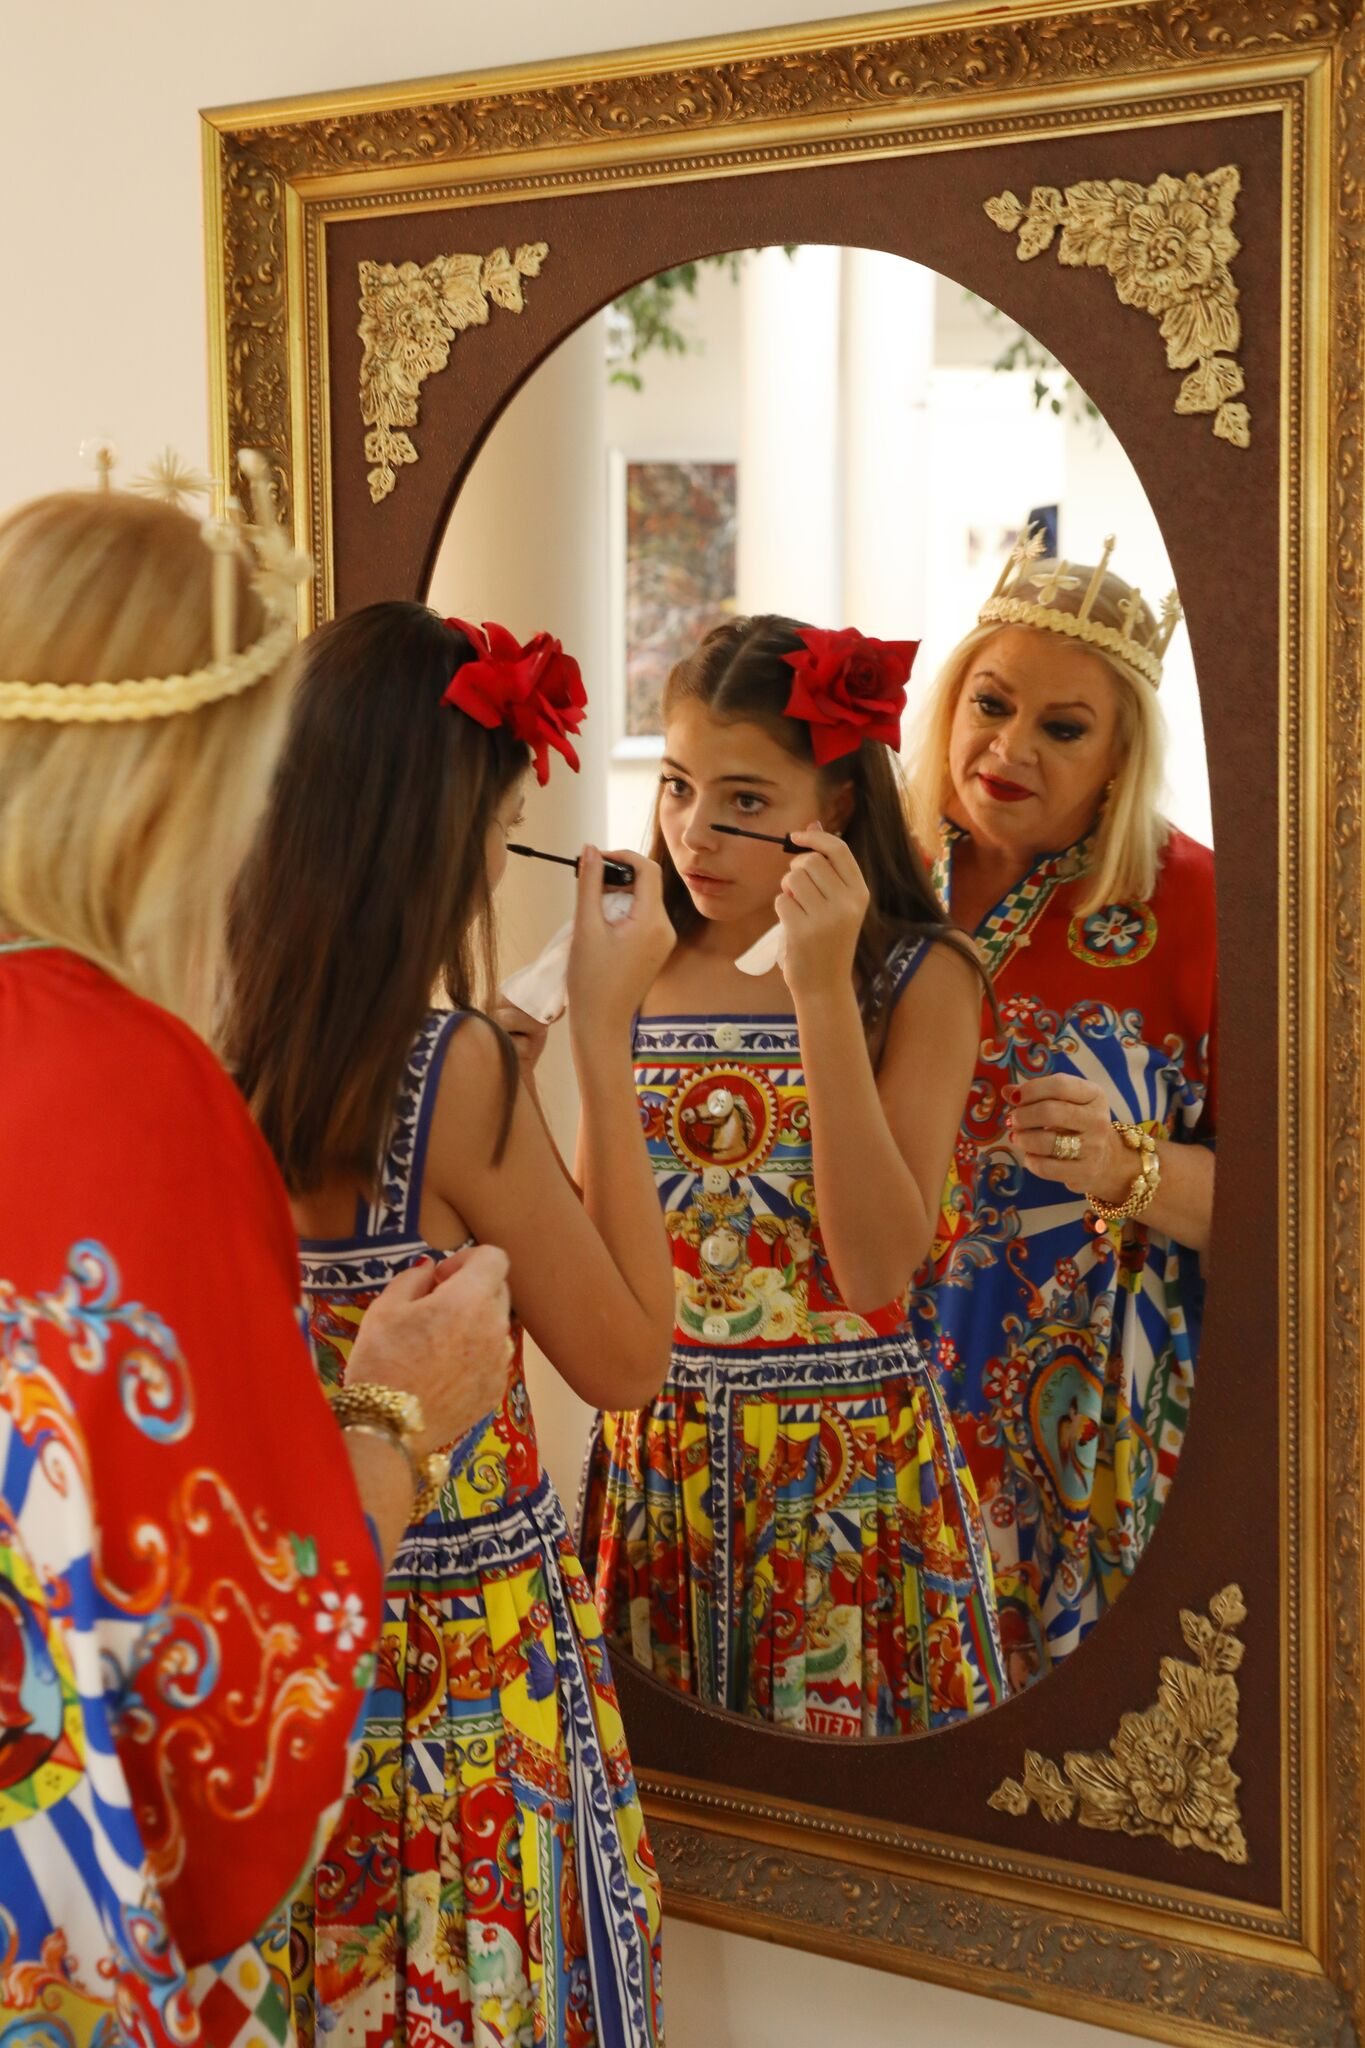 Behind the Scenes of Dolce and Gabbanna Carretto Siciliano Inspired Photoshoot - Nawal and Maud